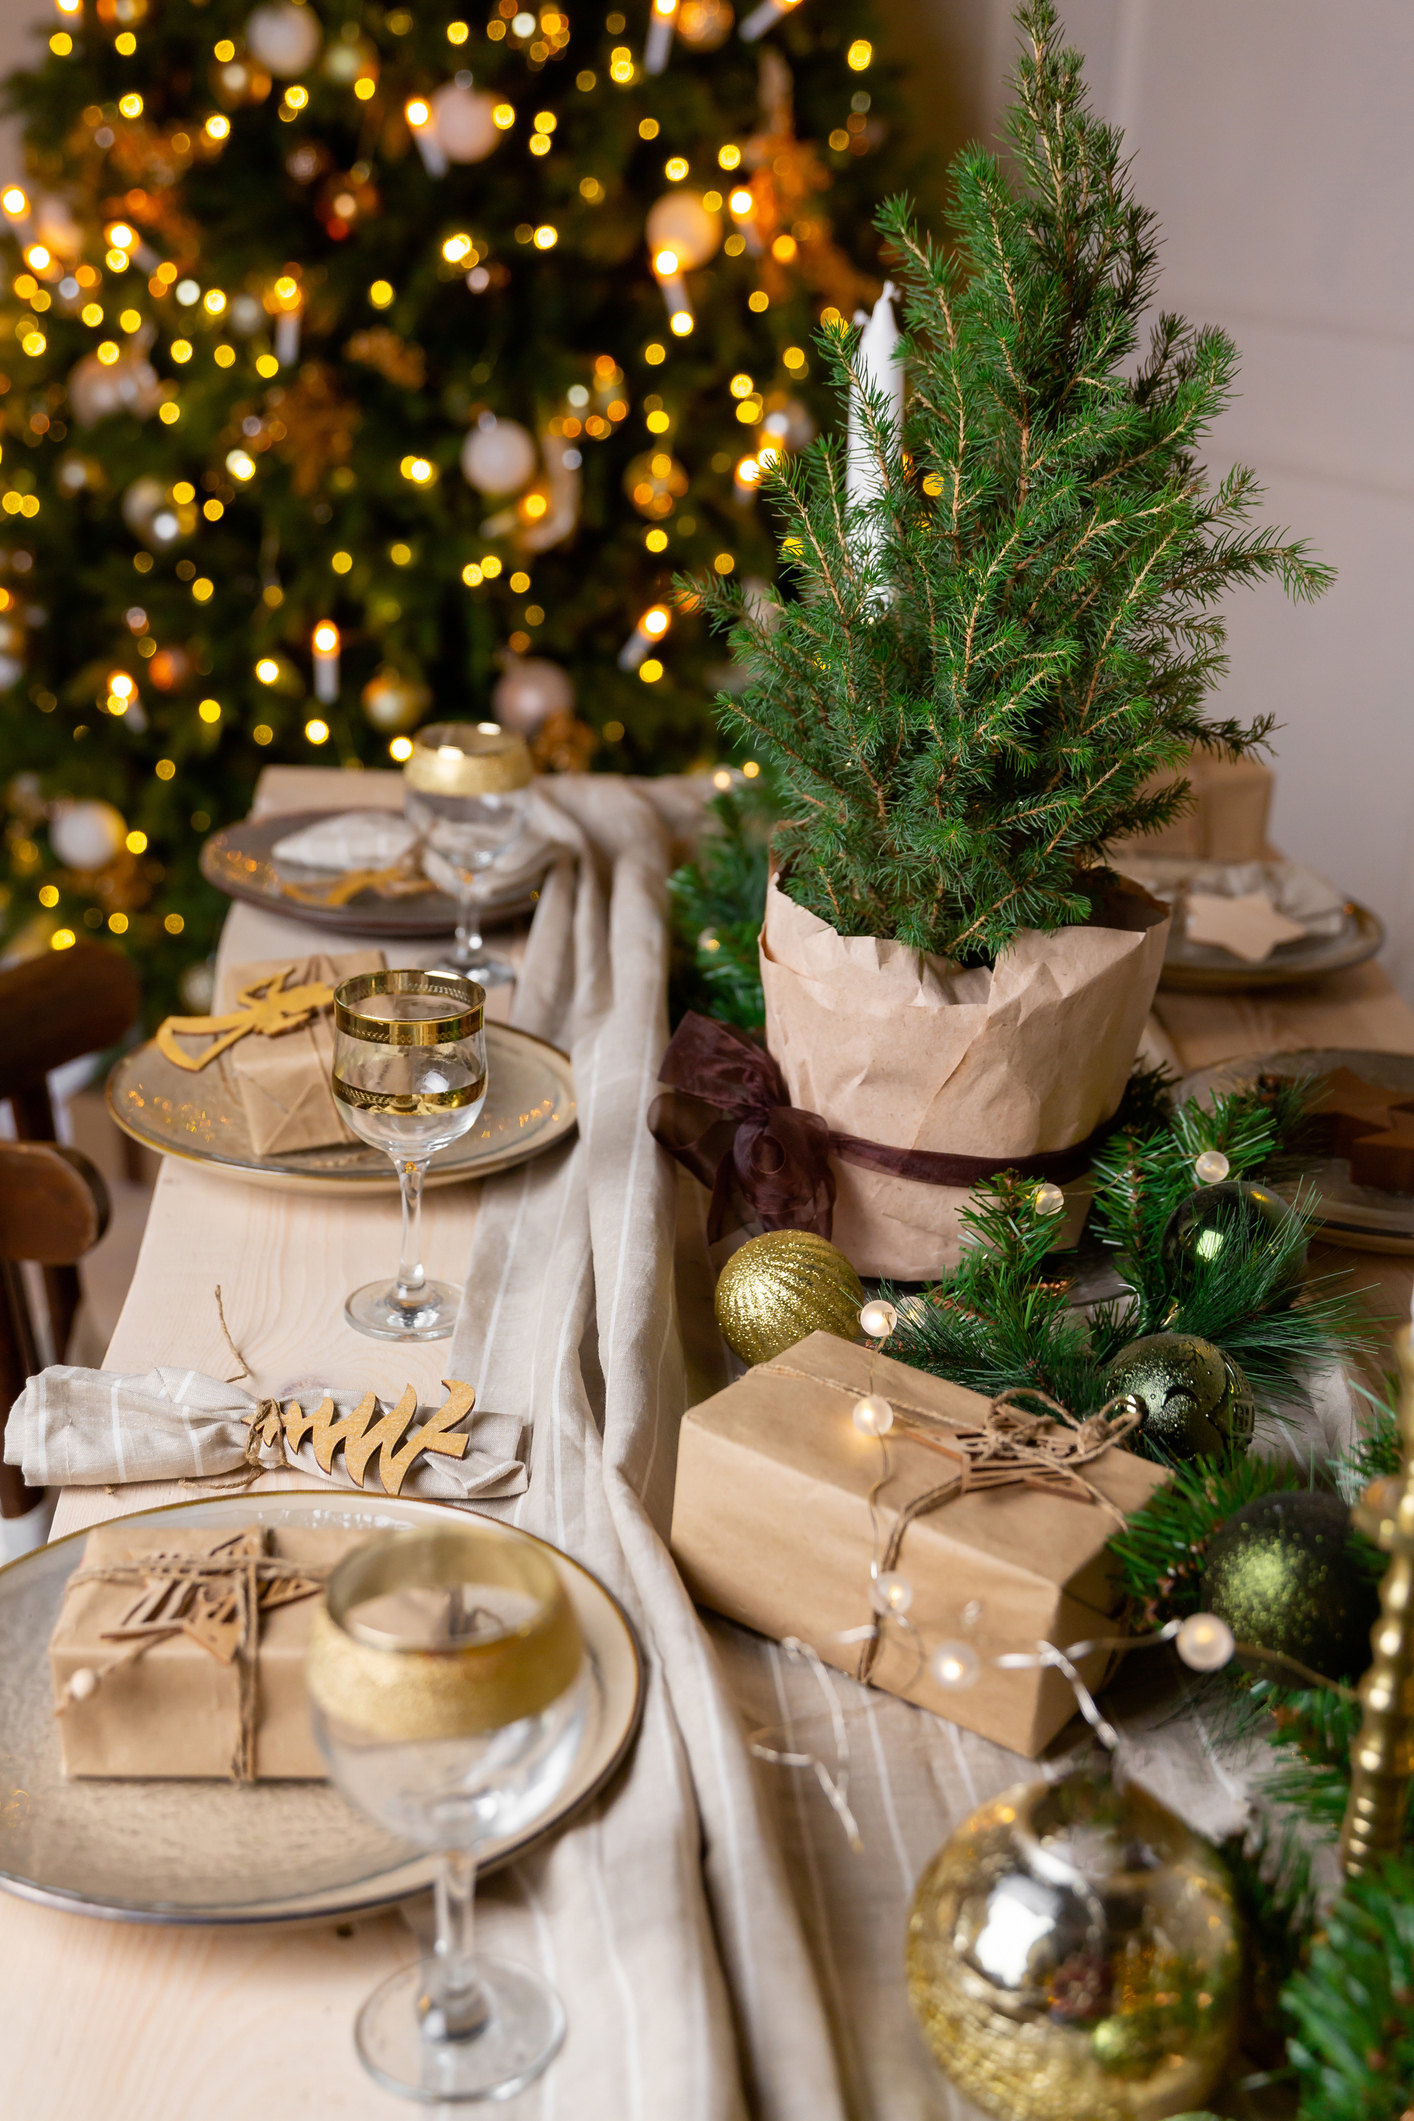 Getty - Christmas Table